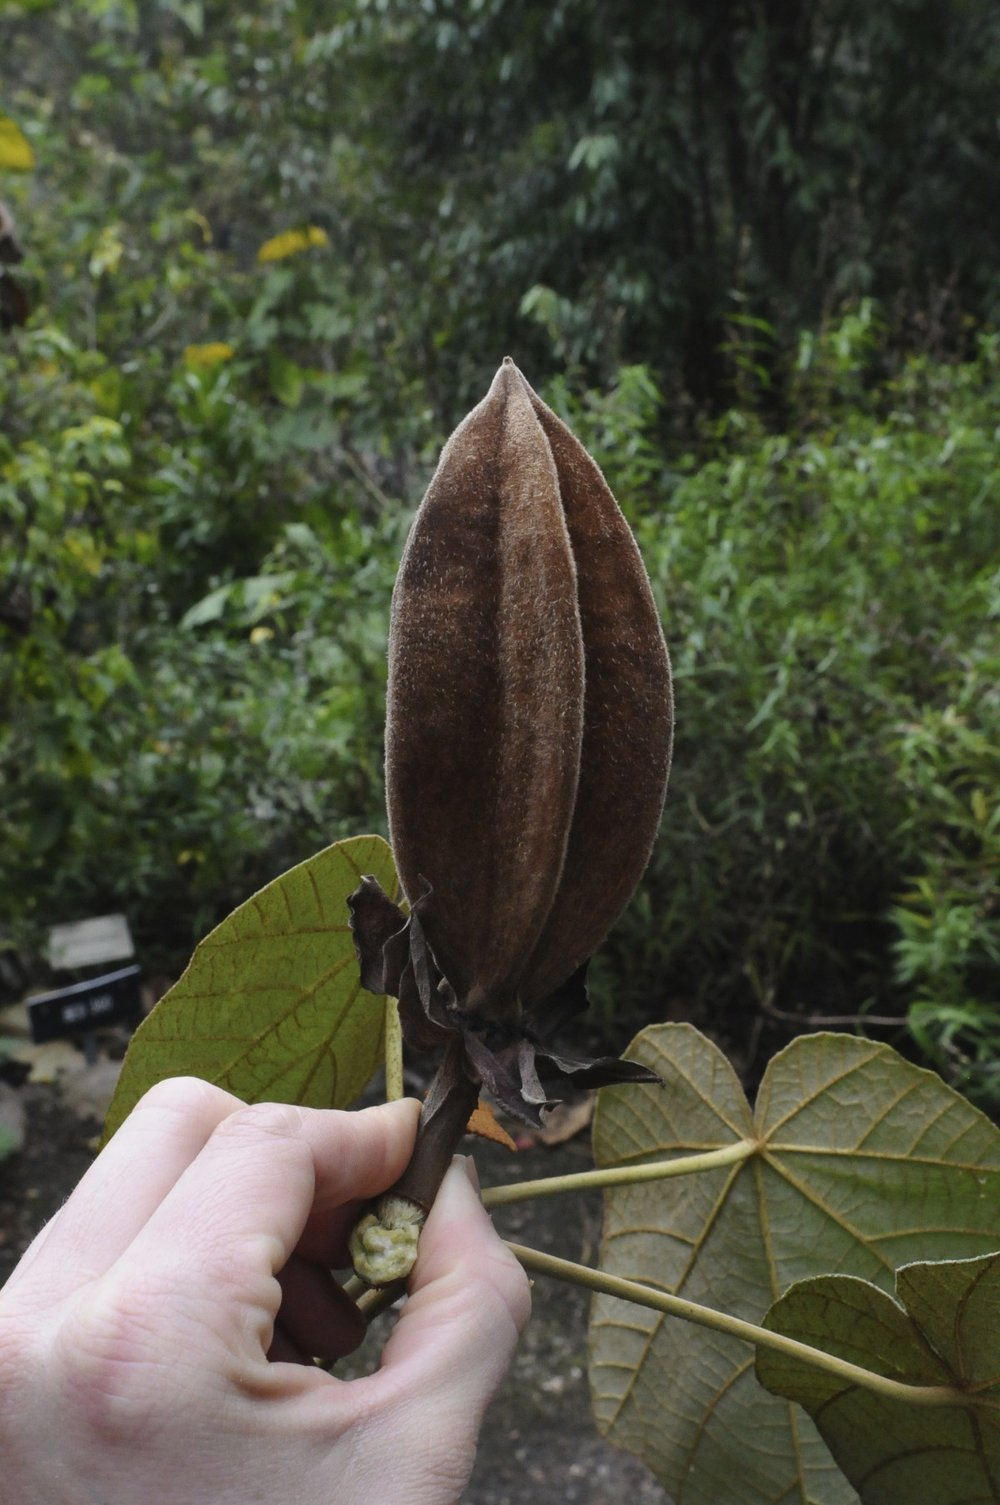 Chiranthodendron mature seedpod.